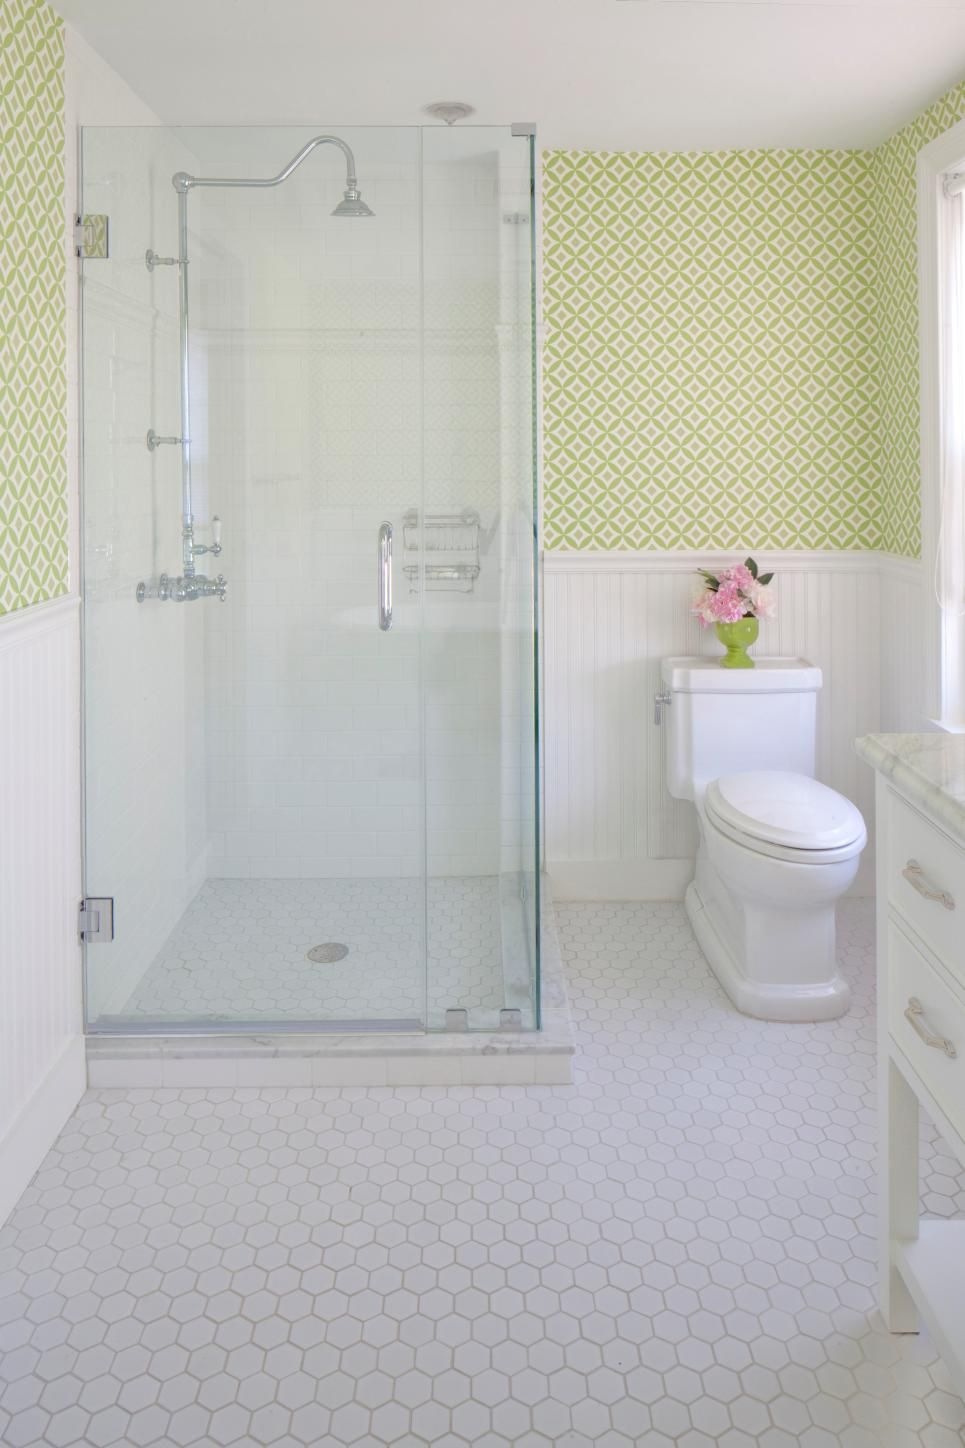 Using graphic wallpaper is a great way to update a vintage bathroom ...